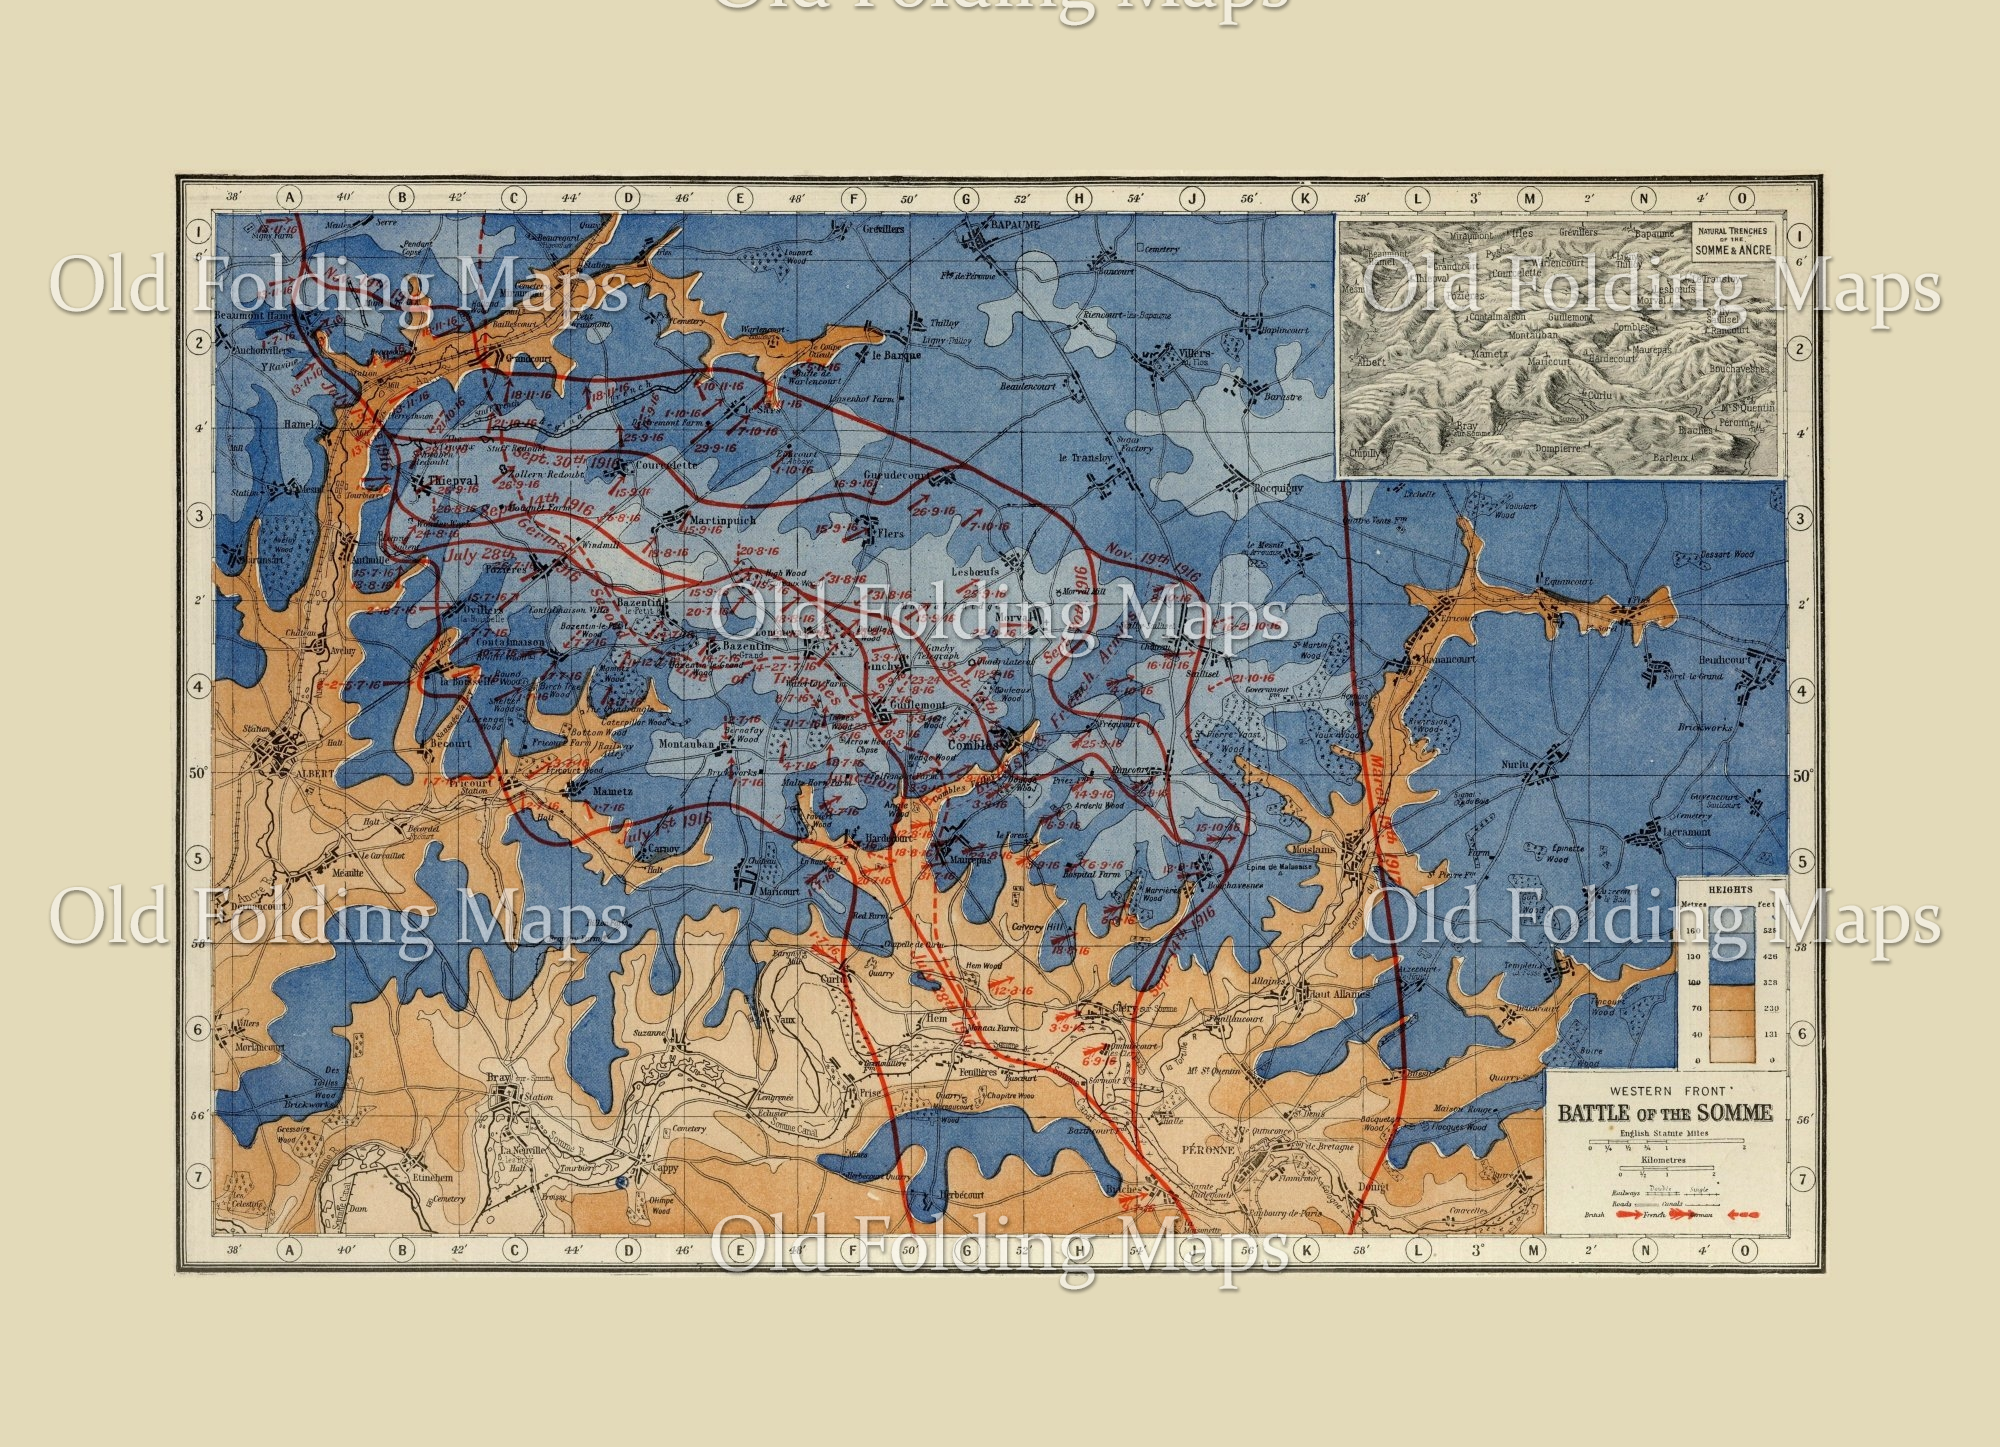 World War One map of the Western Front Battle of the Somme, France - 1916